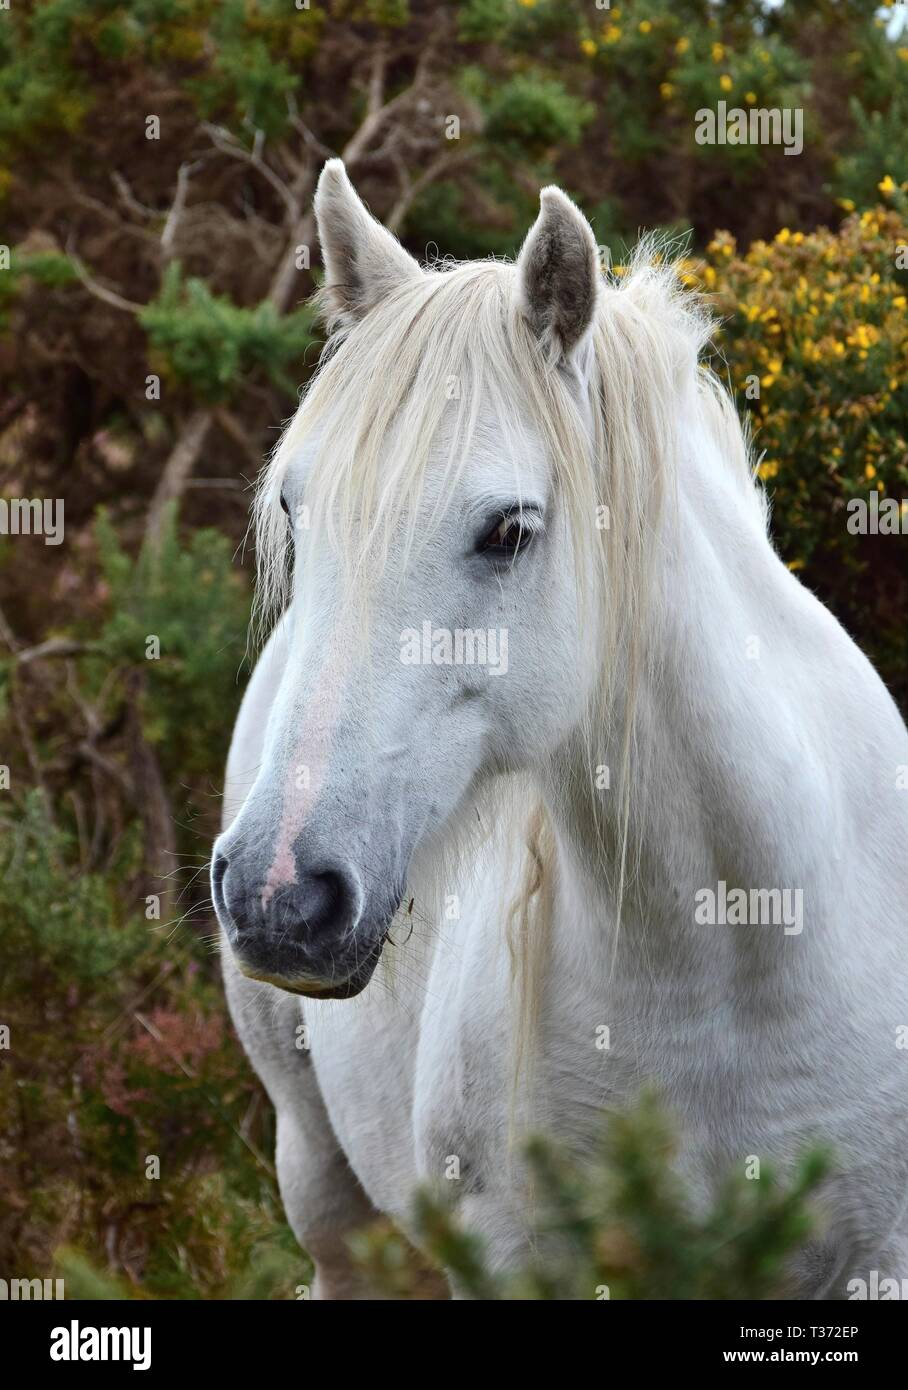 Portrait Of A Beautiful White Horse In Ireland Bushes With Yellow Blossoms In The Background Stock Photo Alamy